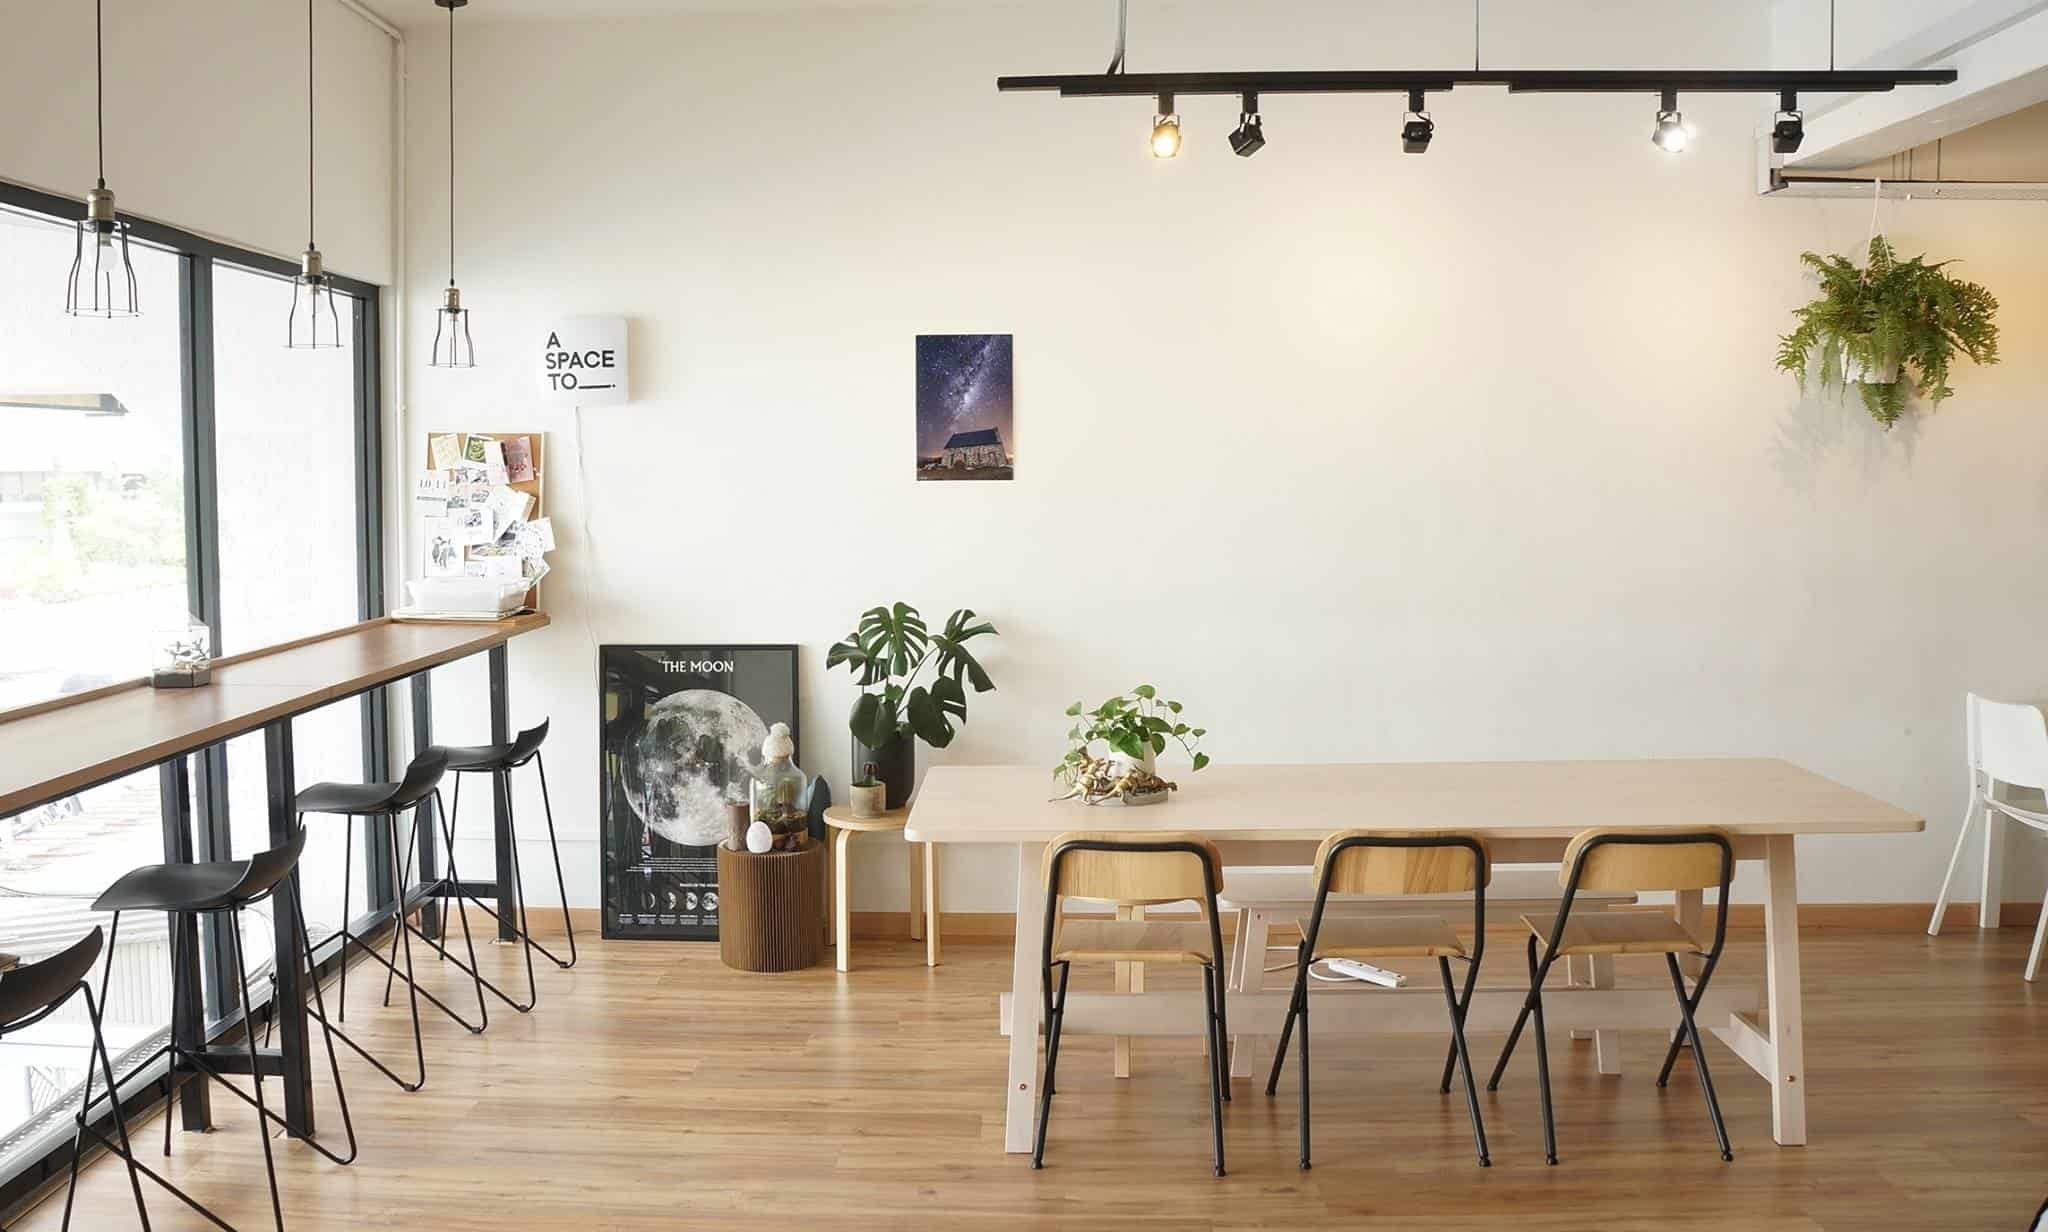 Co-Working Spaces in Damansara, Selangor: A Space to_